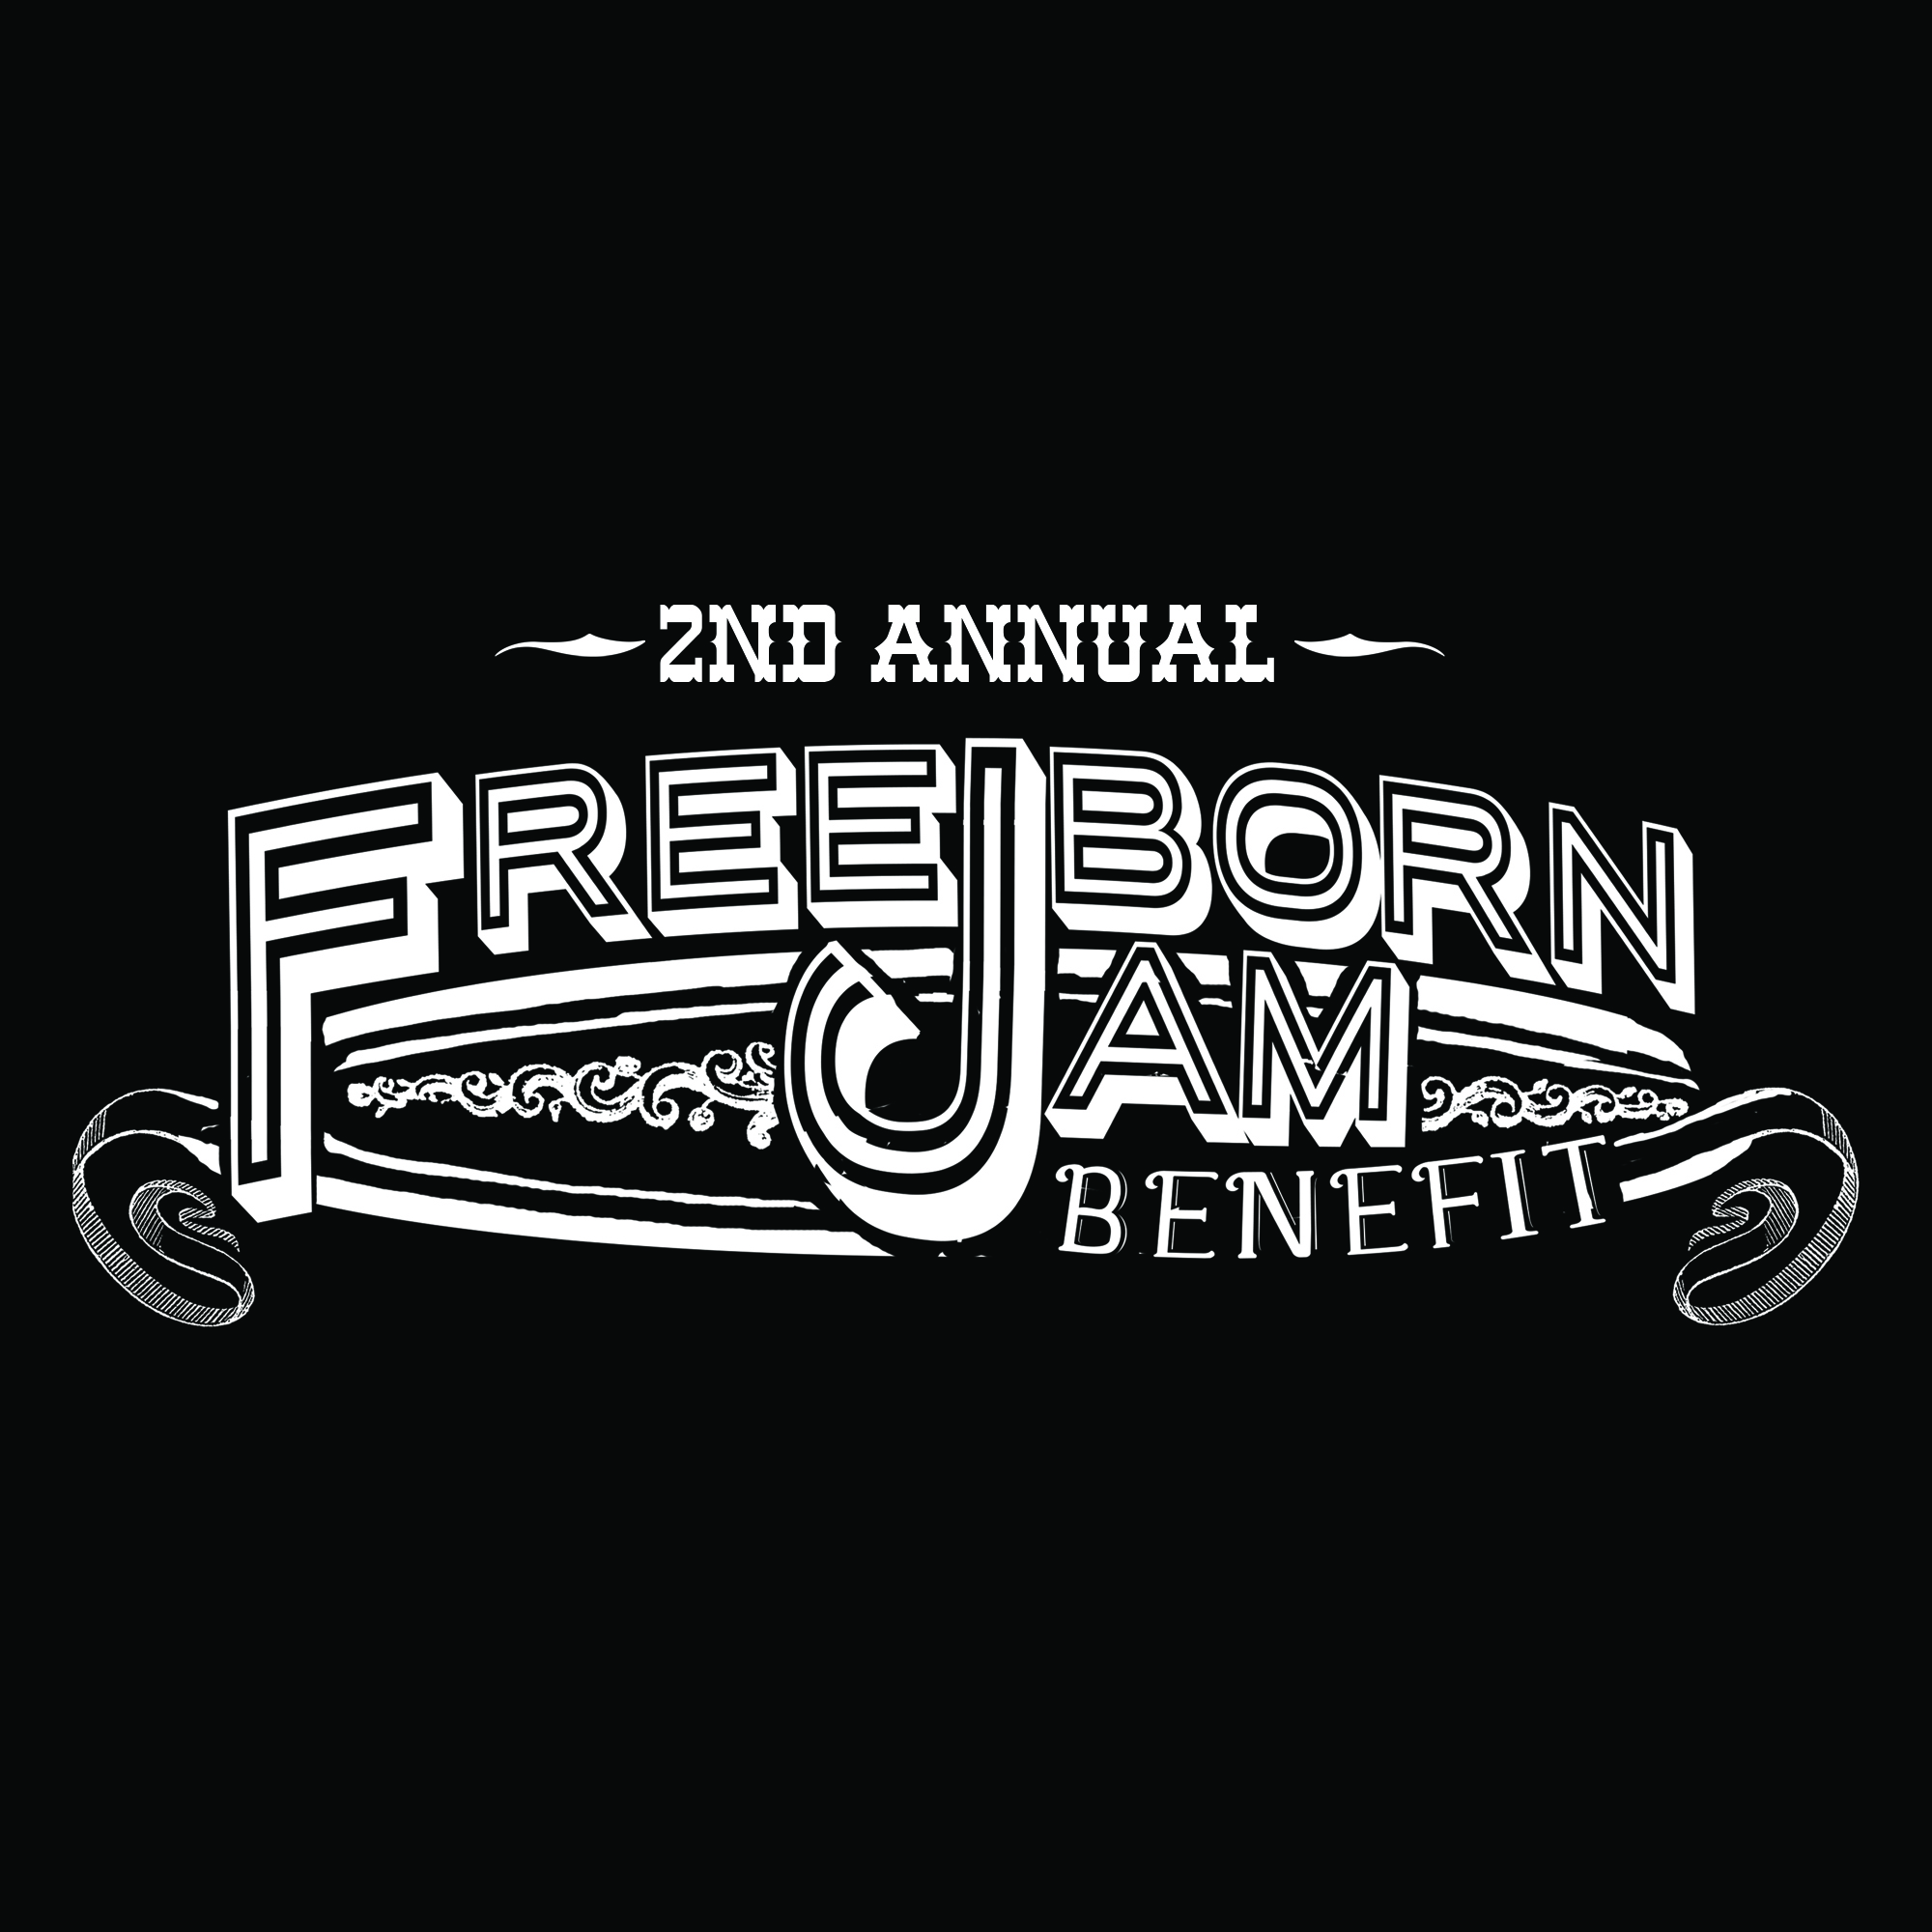 2nd Annual Freeborn Jam